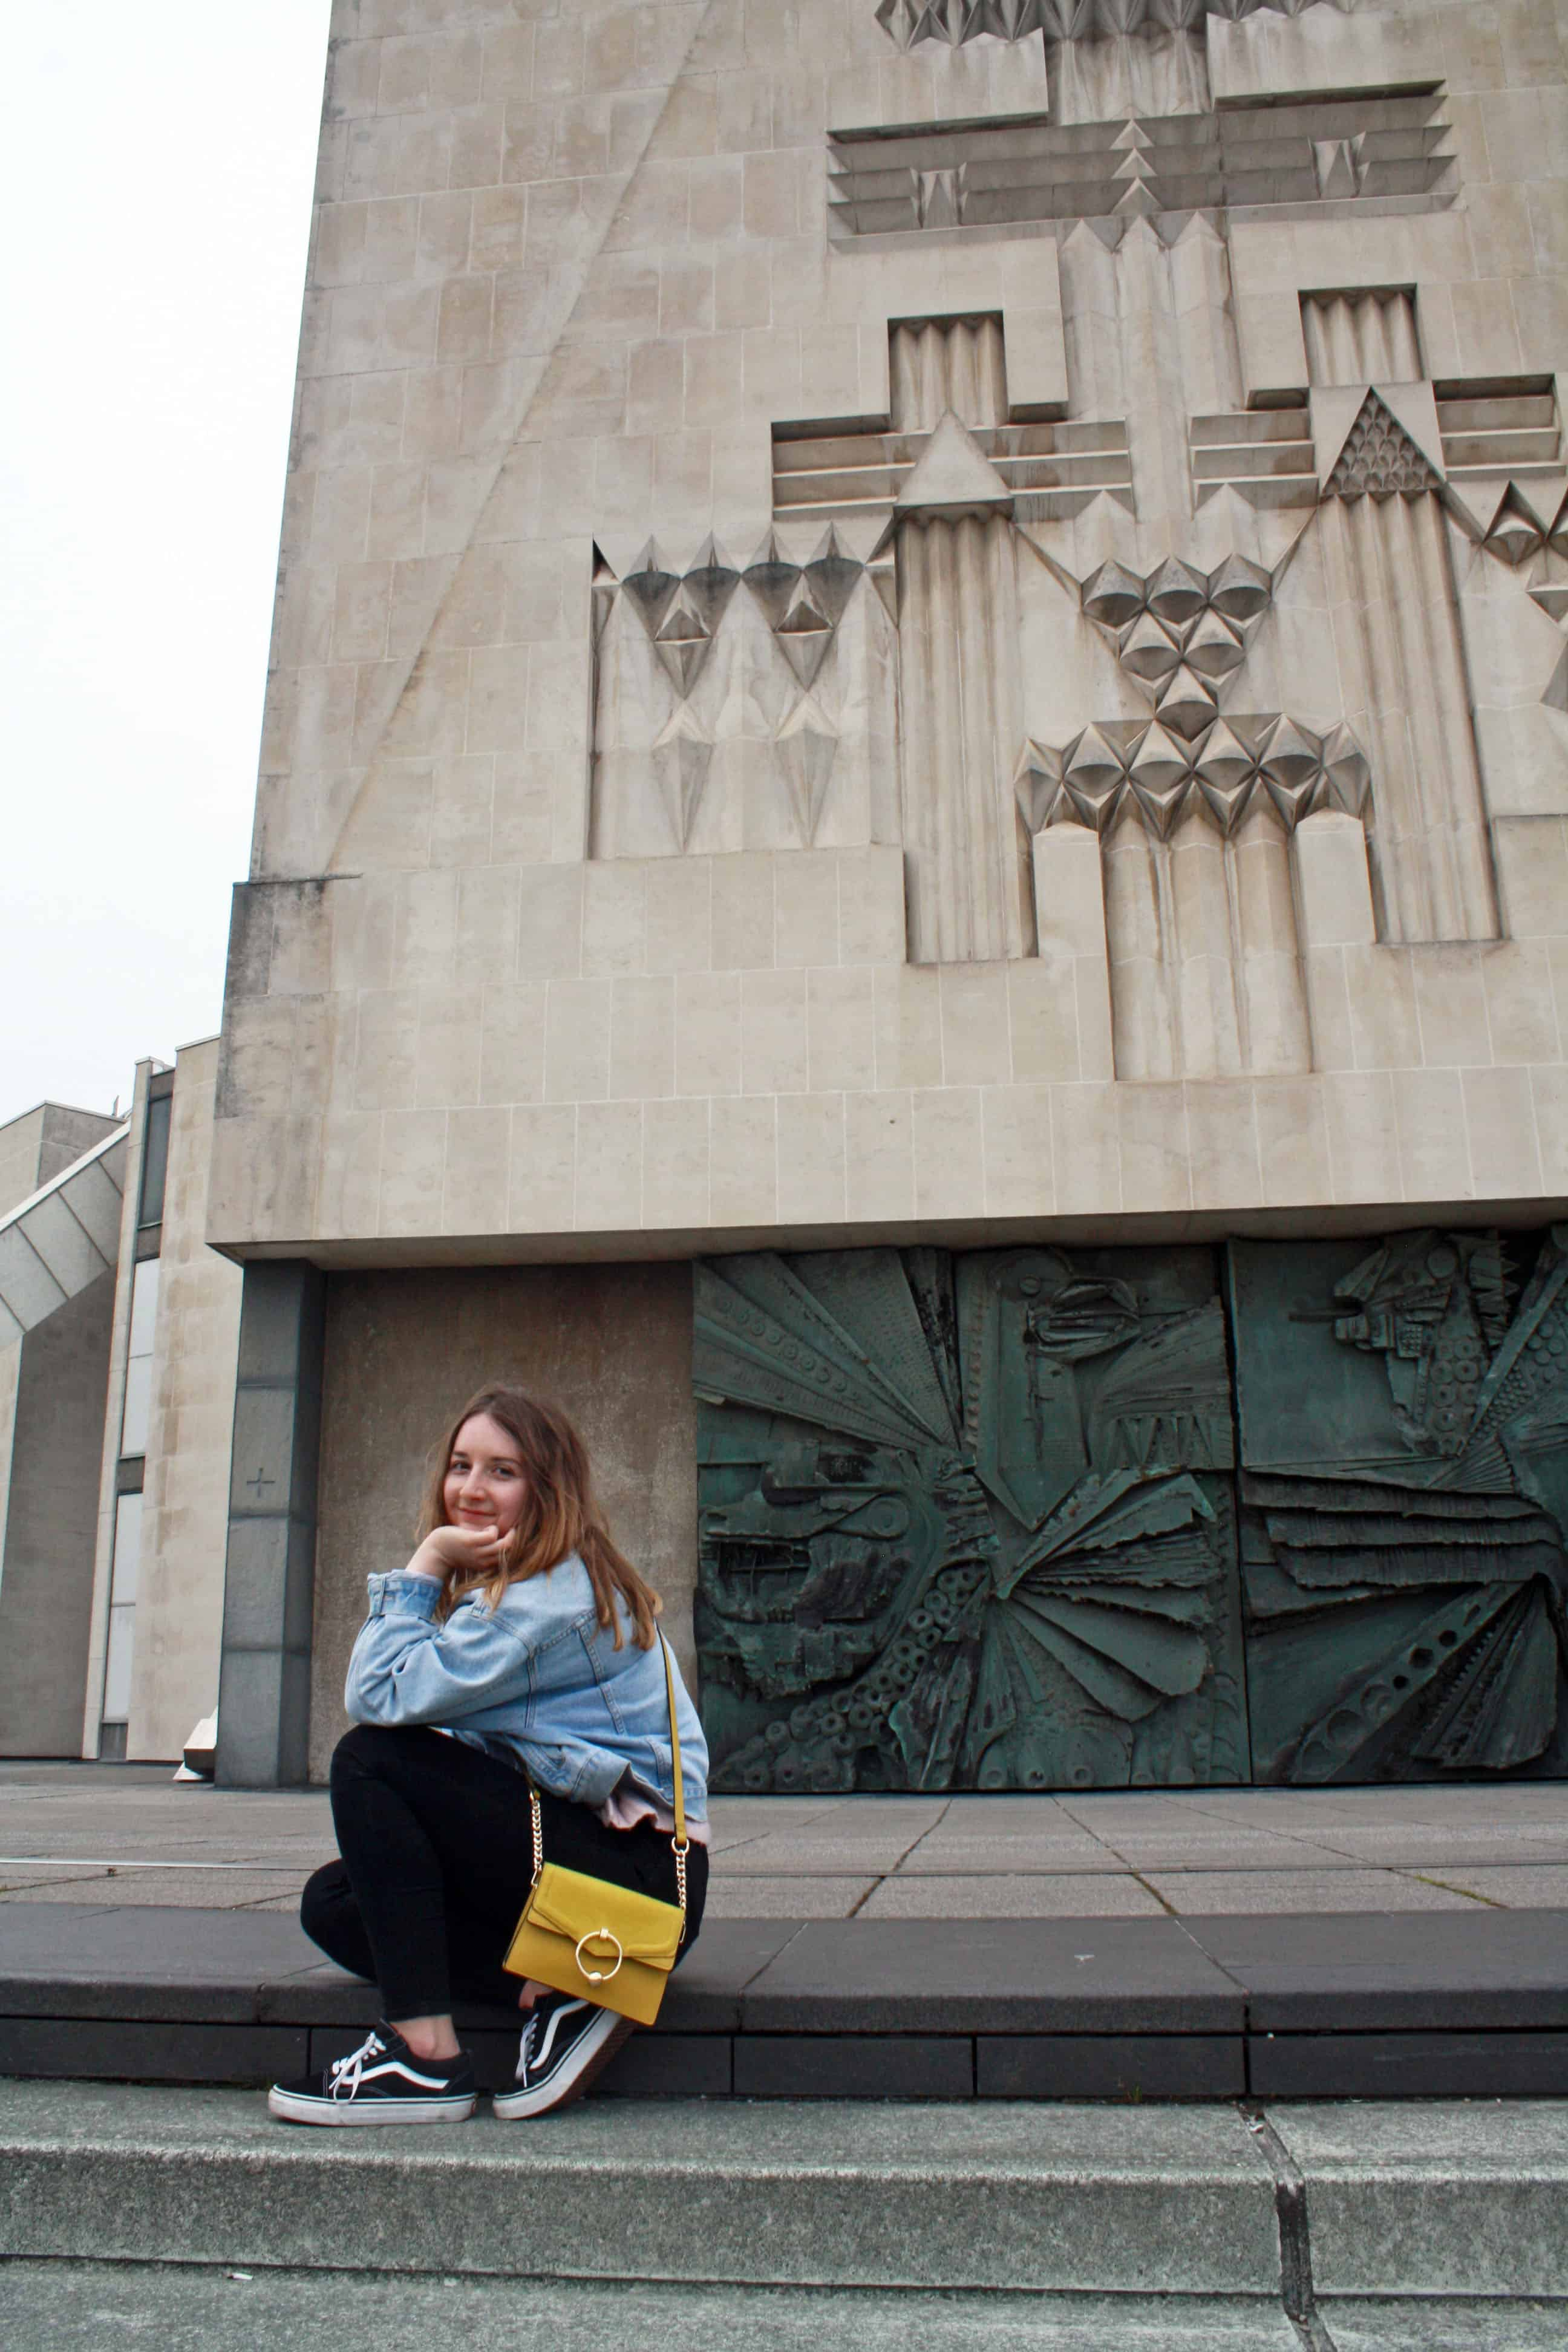 On the steps of Liverpool Metropolitan Cathedral